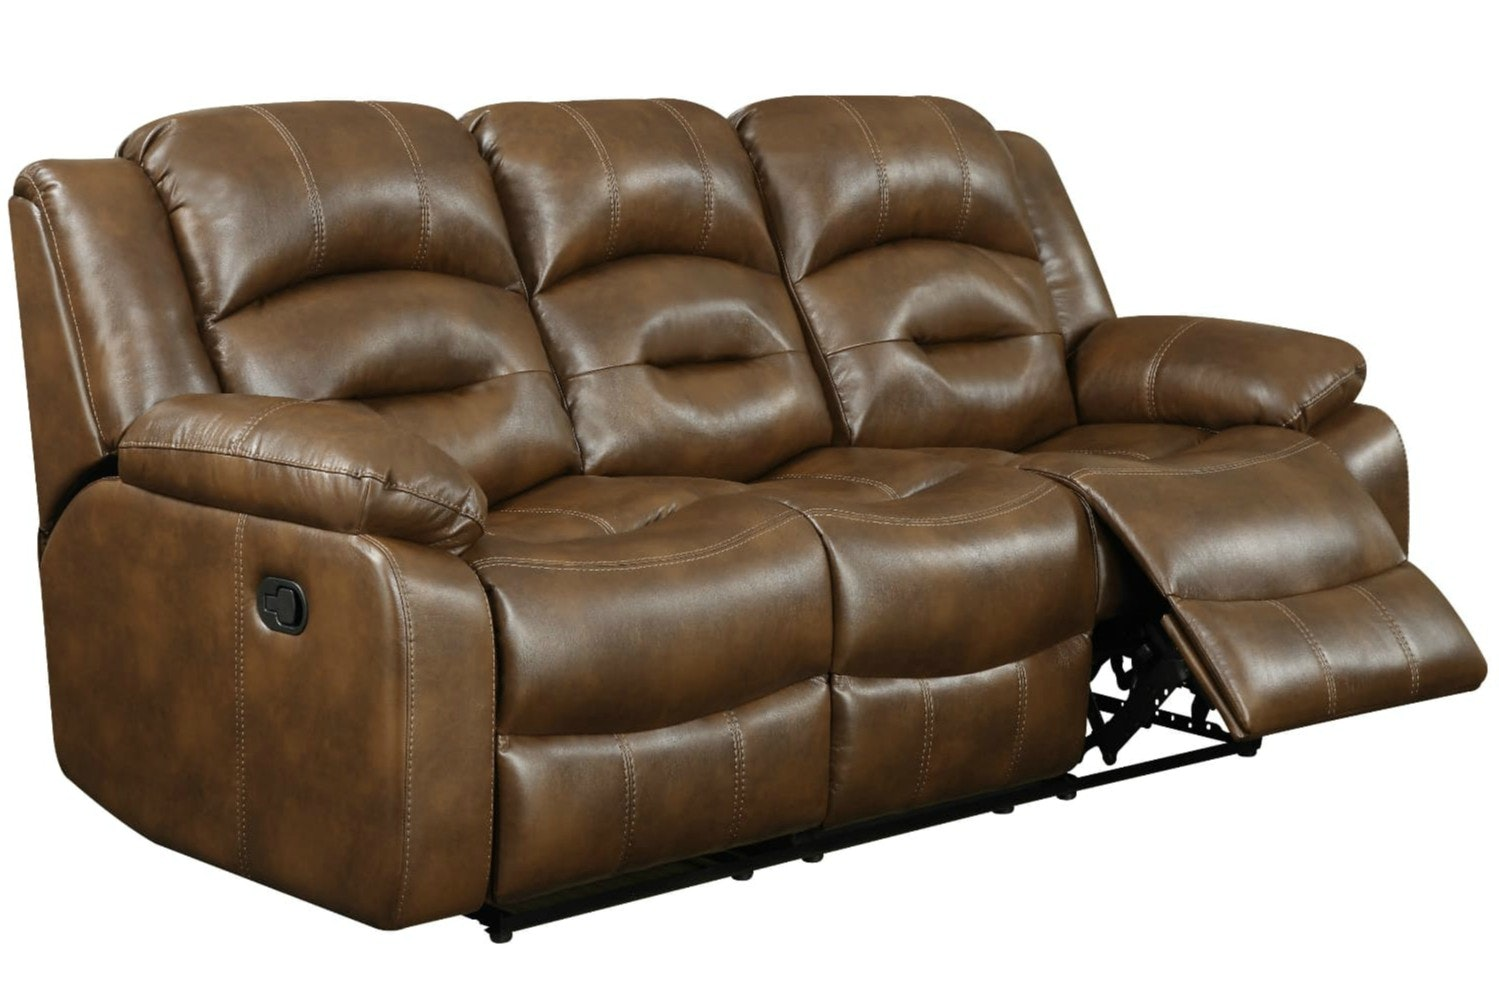 Hunter 3 Seater Recliner Sofa | Tan